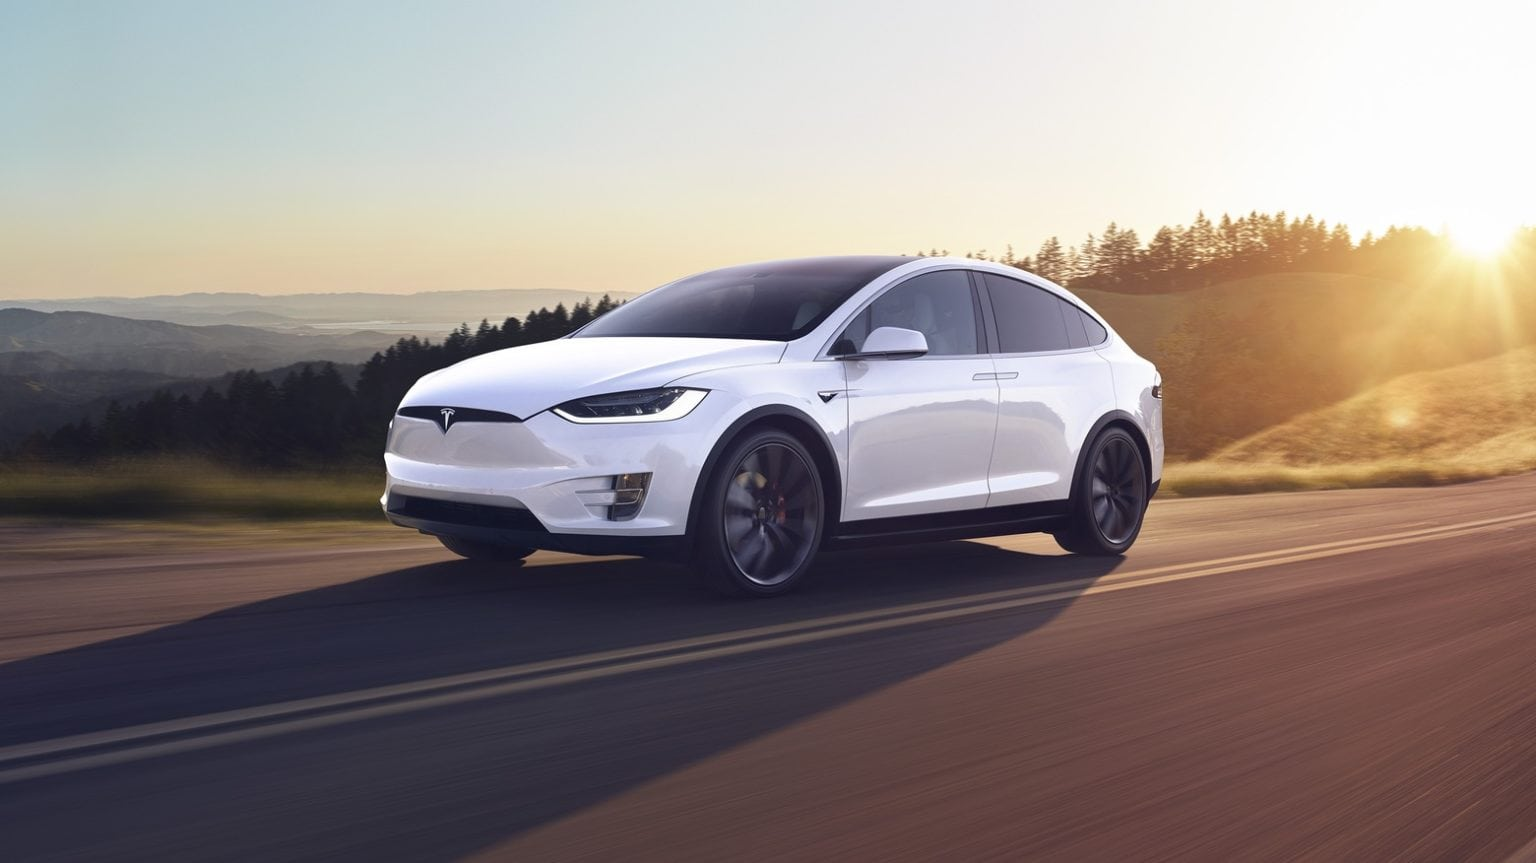 A Tesla Model X similar to this one crashed in 2018.